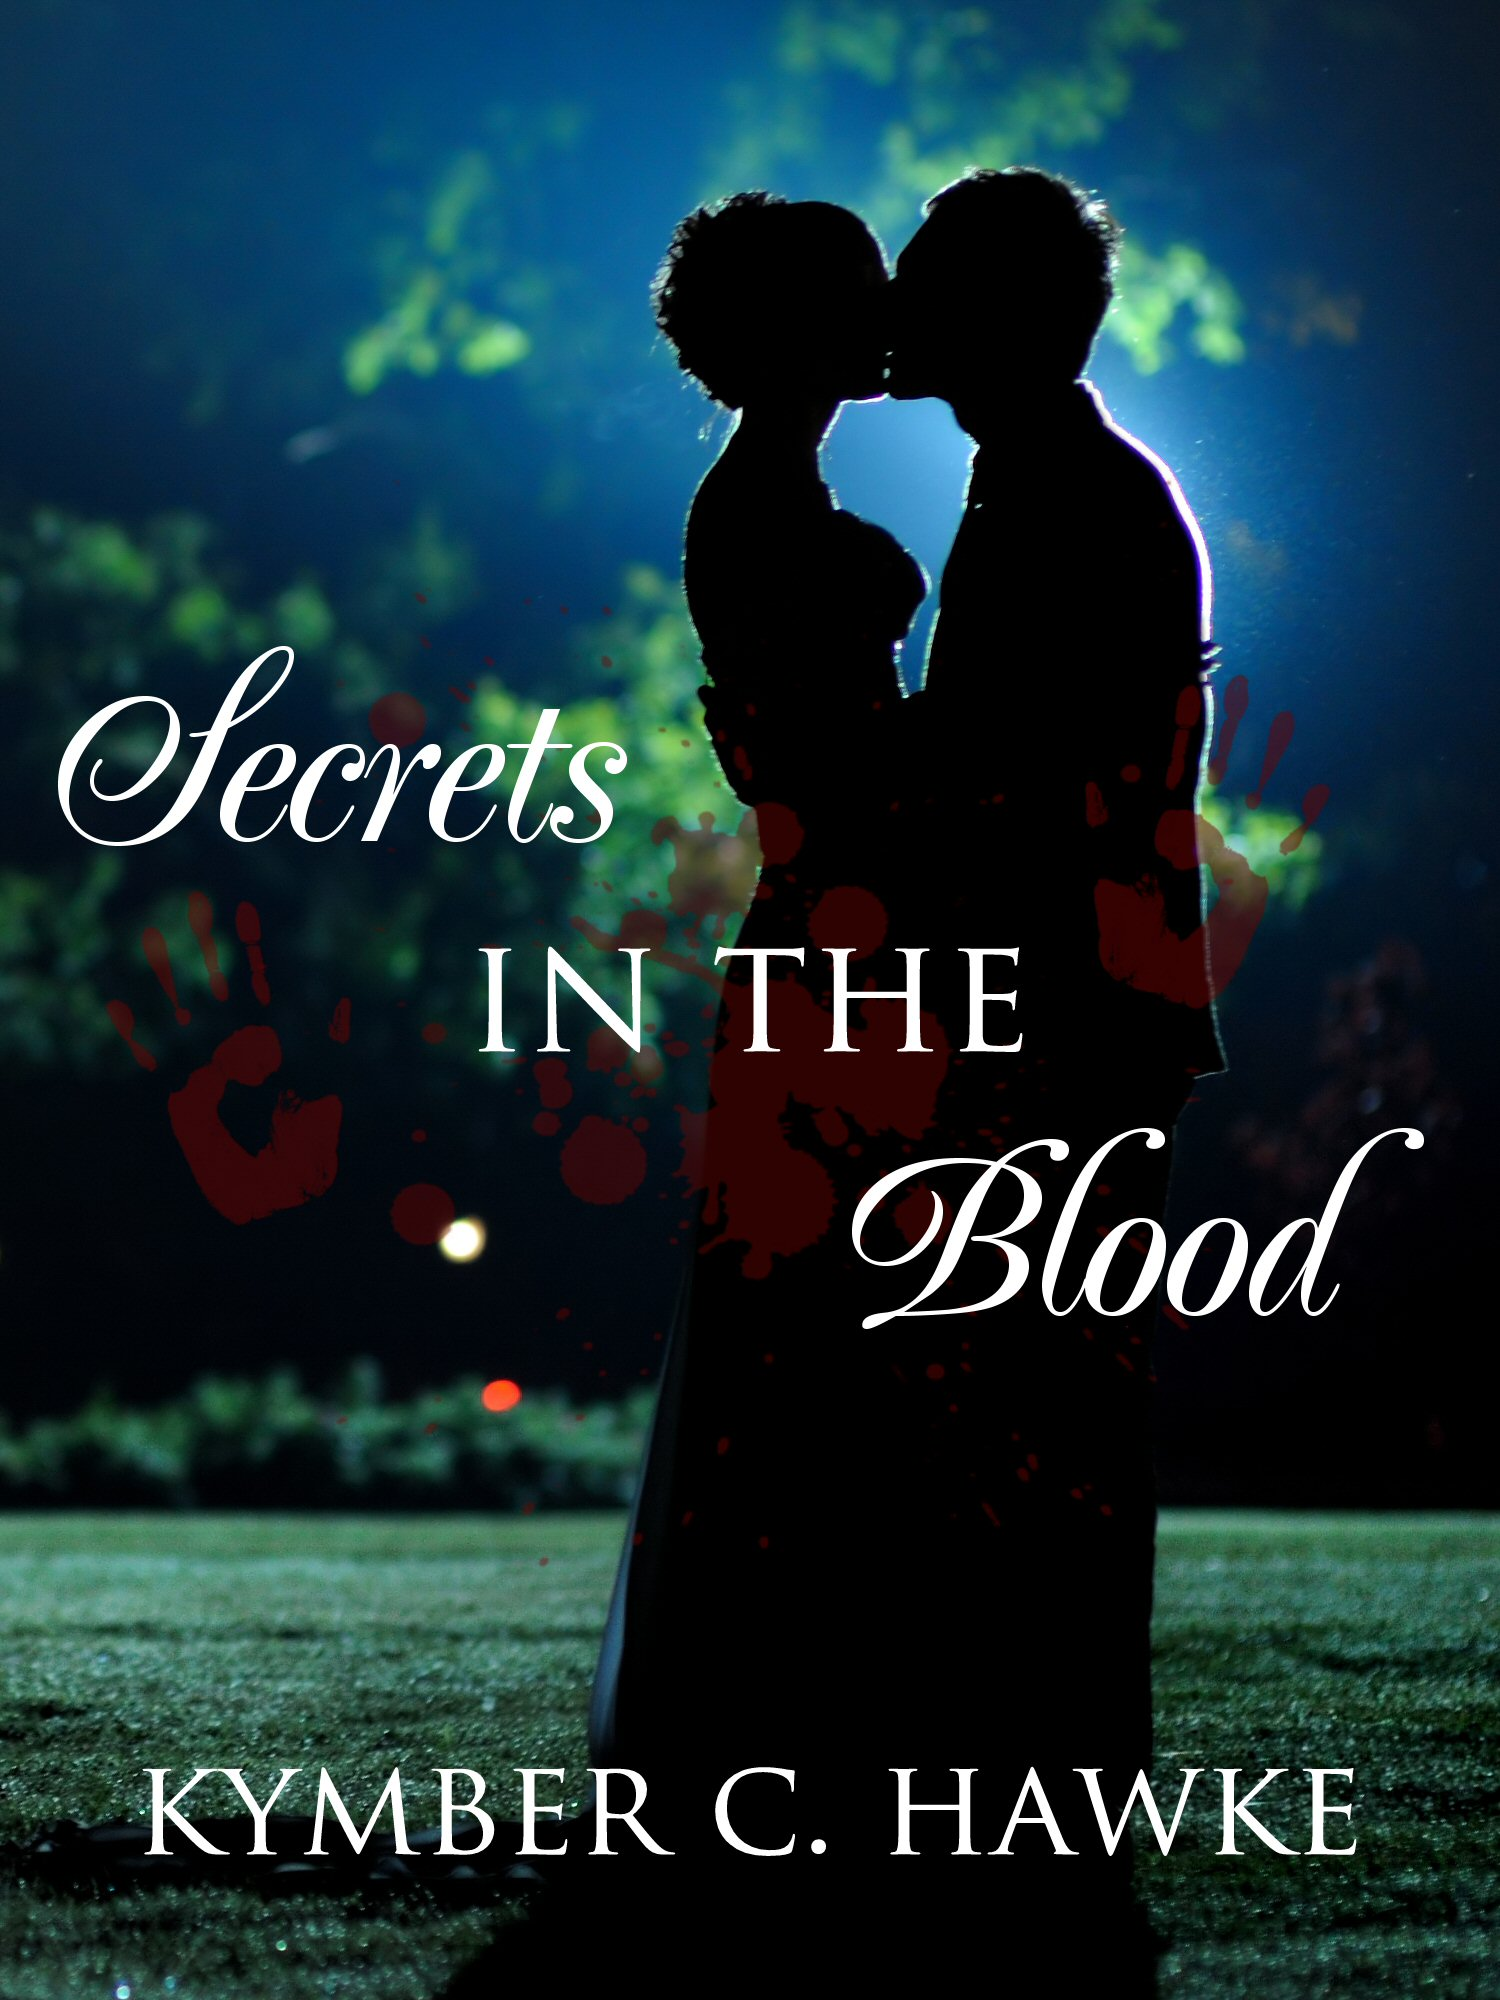 secrets in the blood